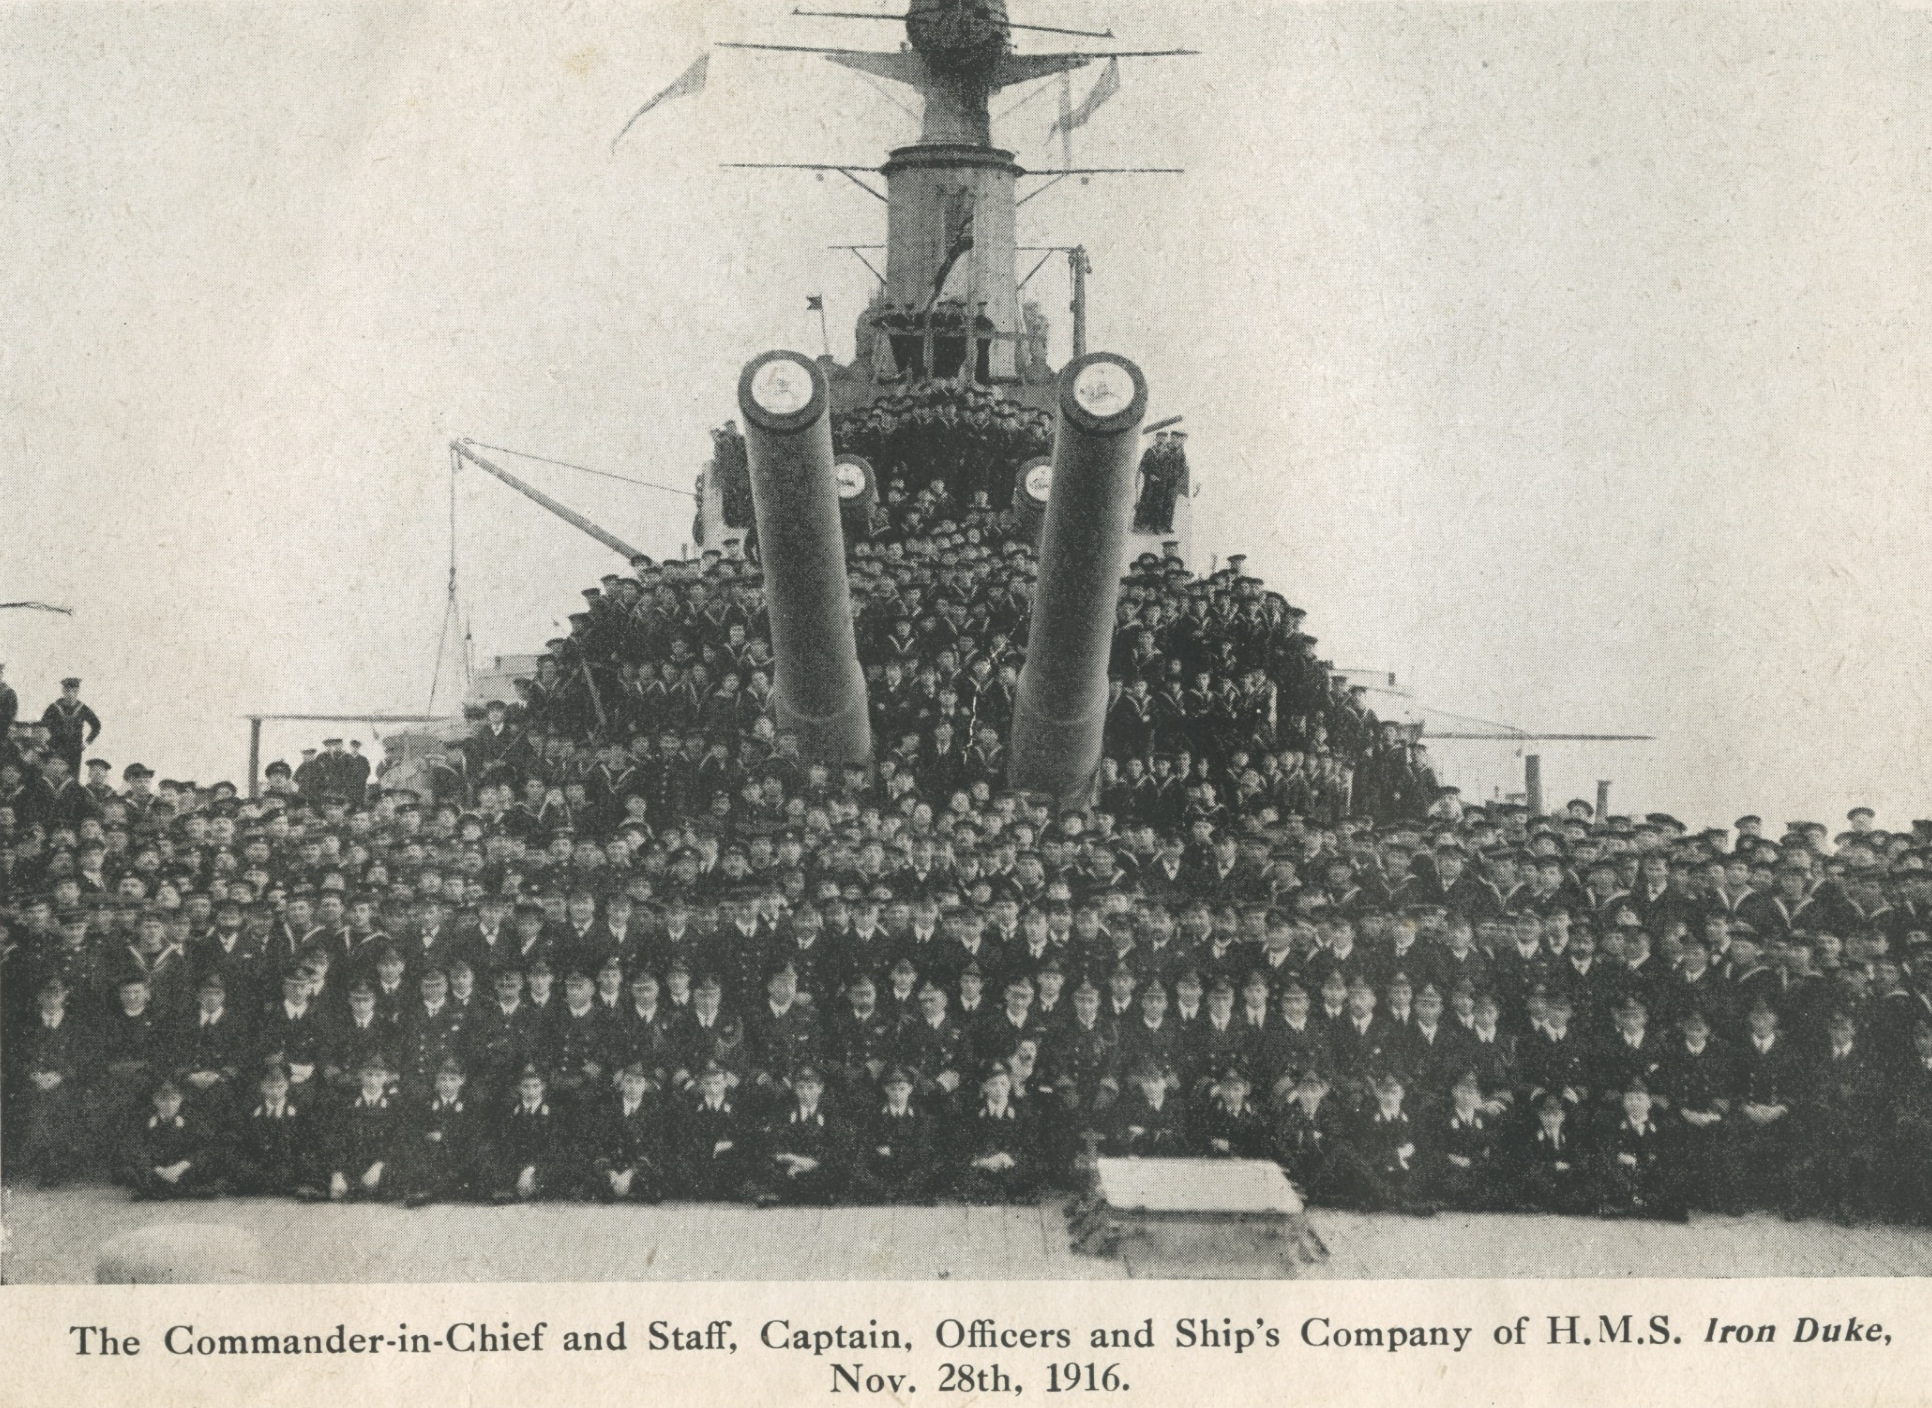 Royal Navy Jellicoe The Grand Fleet 1914 1916 Iron Duke Engine Diagram Up To Date Well Researched Naval Histories Have An Important Part Play In Understanding Past Events But I Would Like Suggest They Are Equalled By